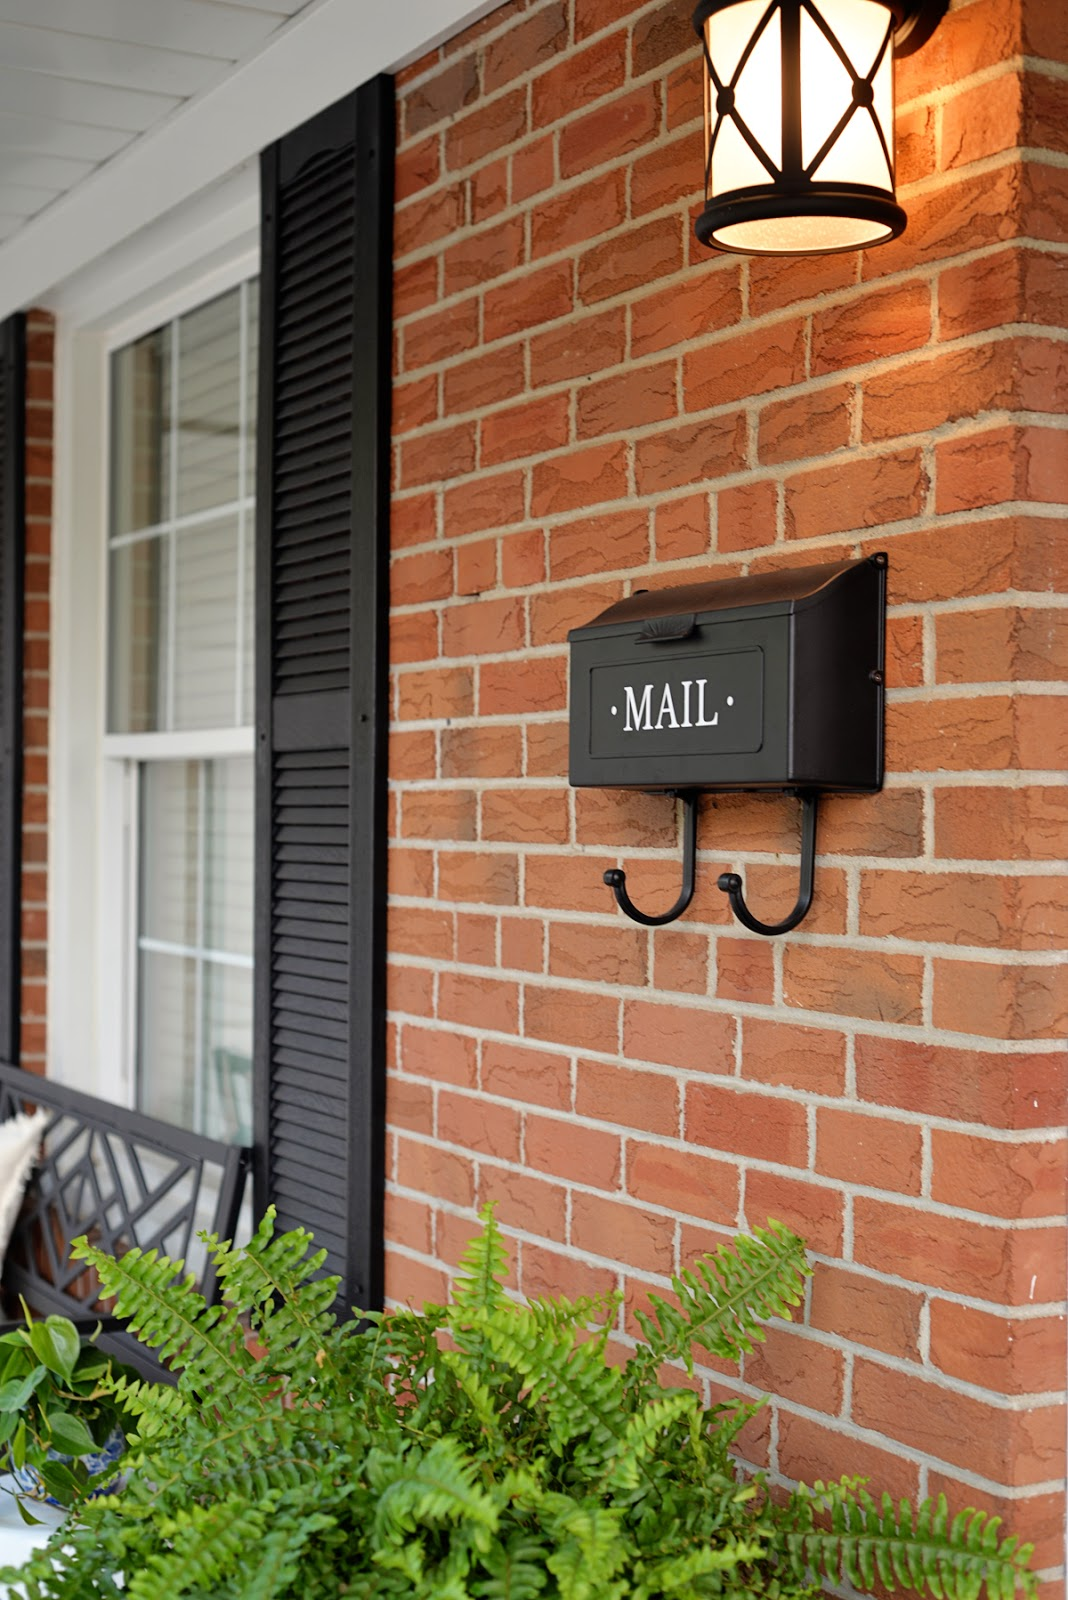 front porch decorating ideas for summer, red brick house with black shutters and mailbox decal